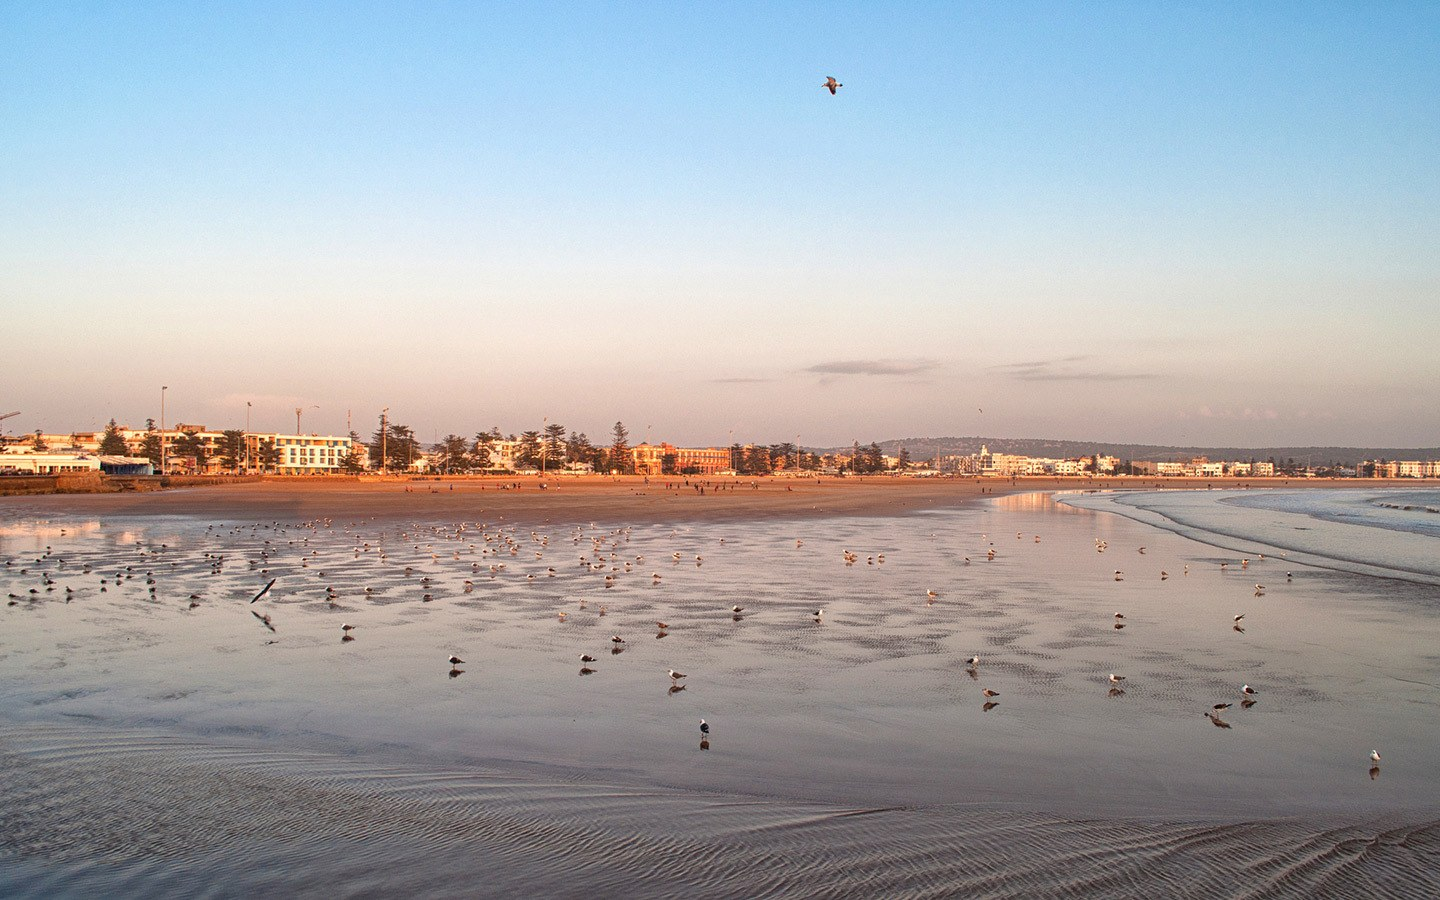 Walking on the beach, one of the best things to do in Essaouira